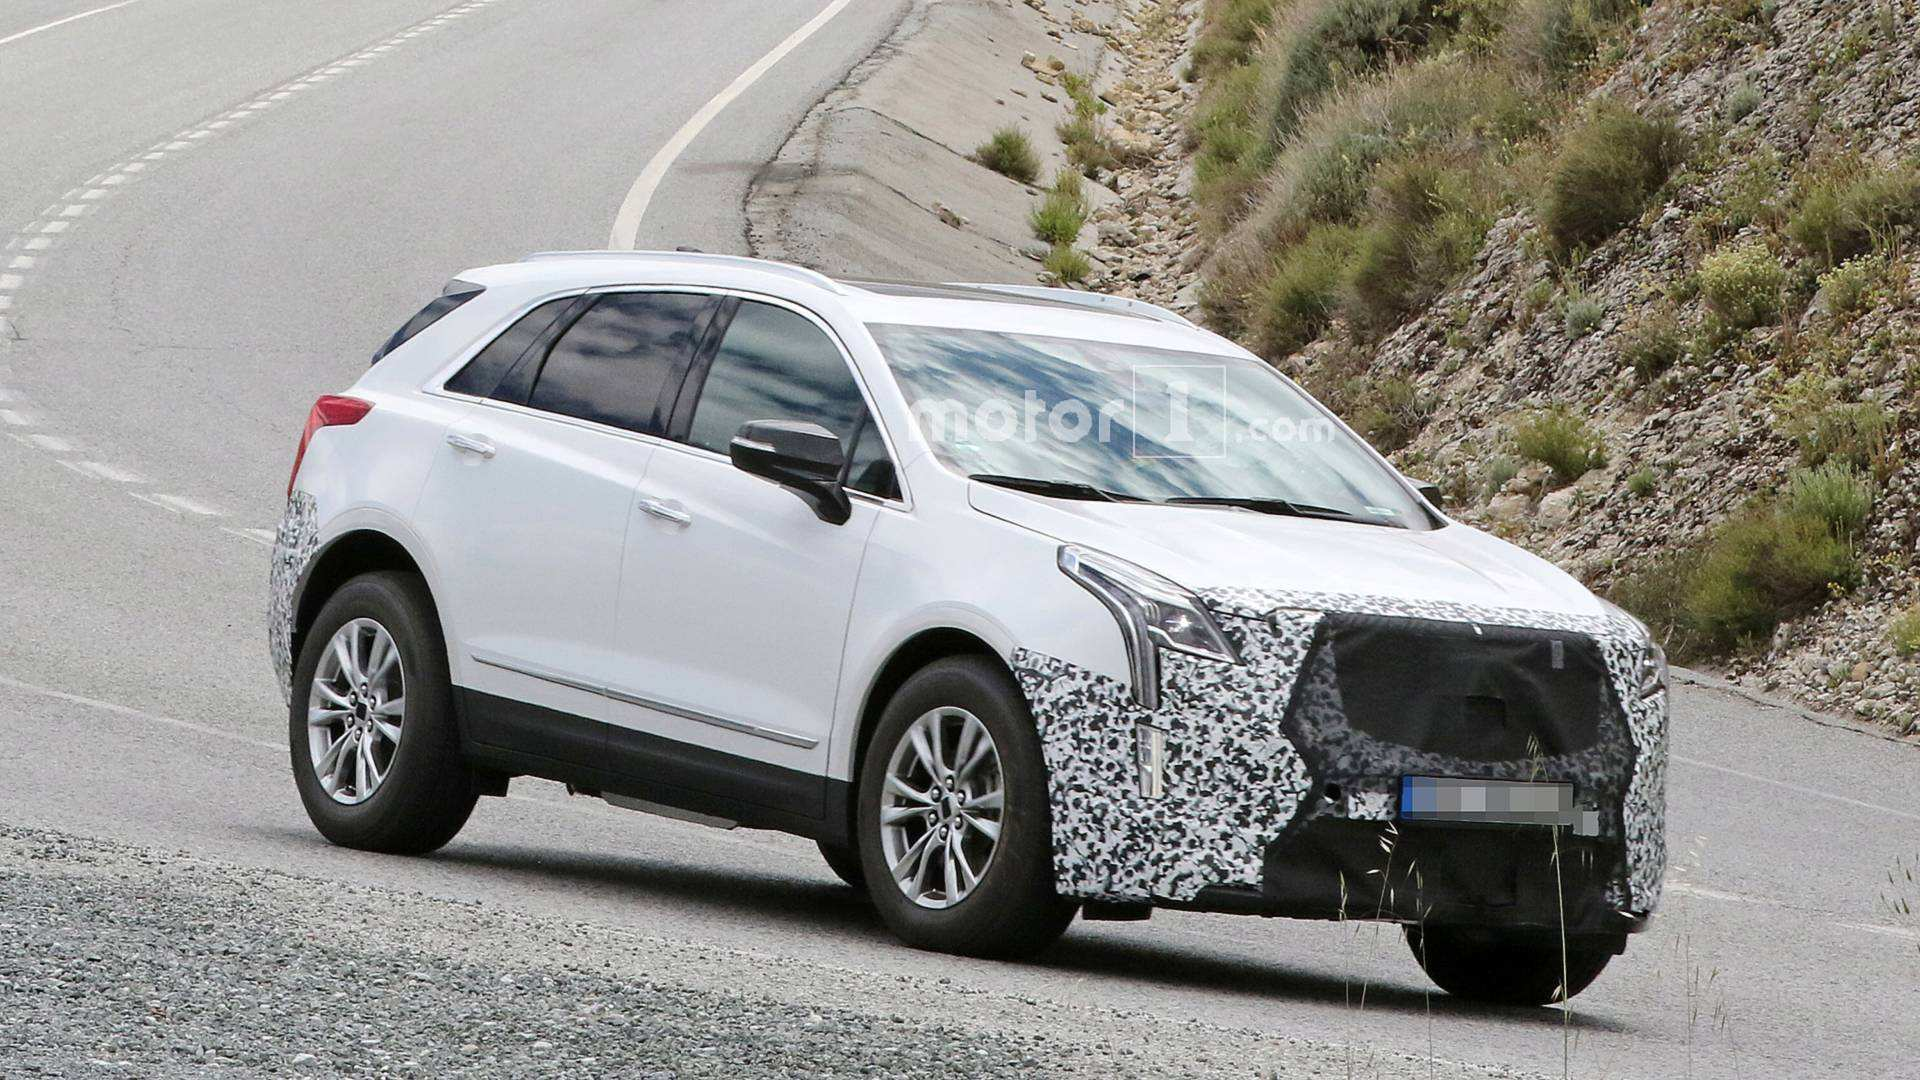 67 Great Spy Shots 2020 Cadillac Xt5 Concept by Spy Shots 2020 Cadillac Xt5